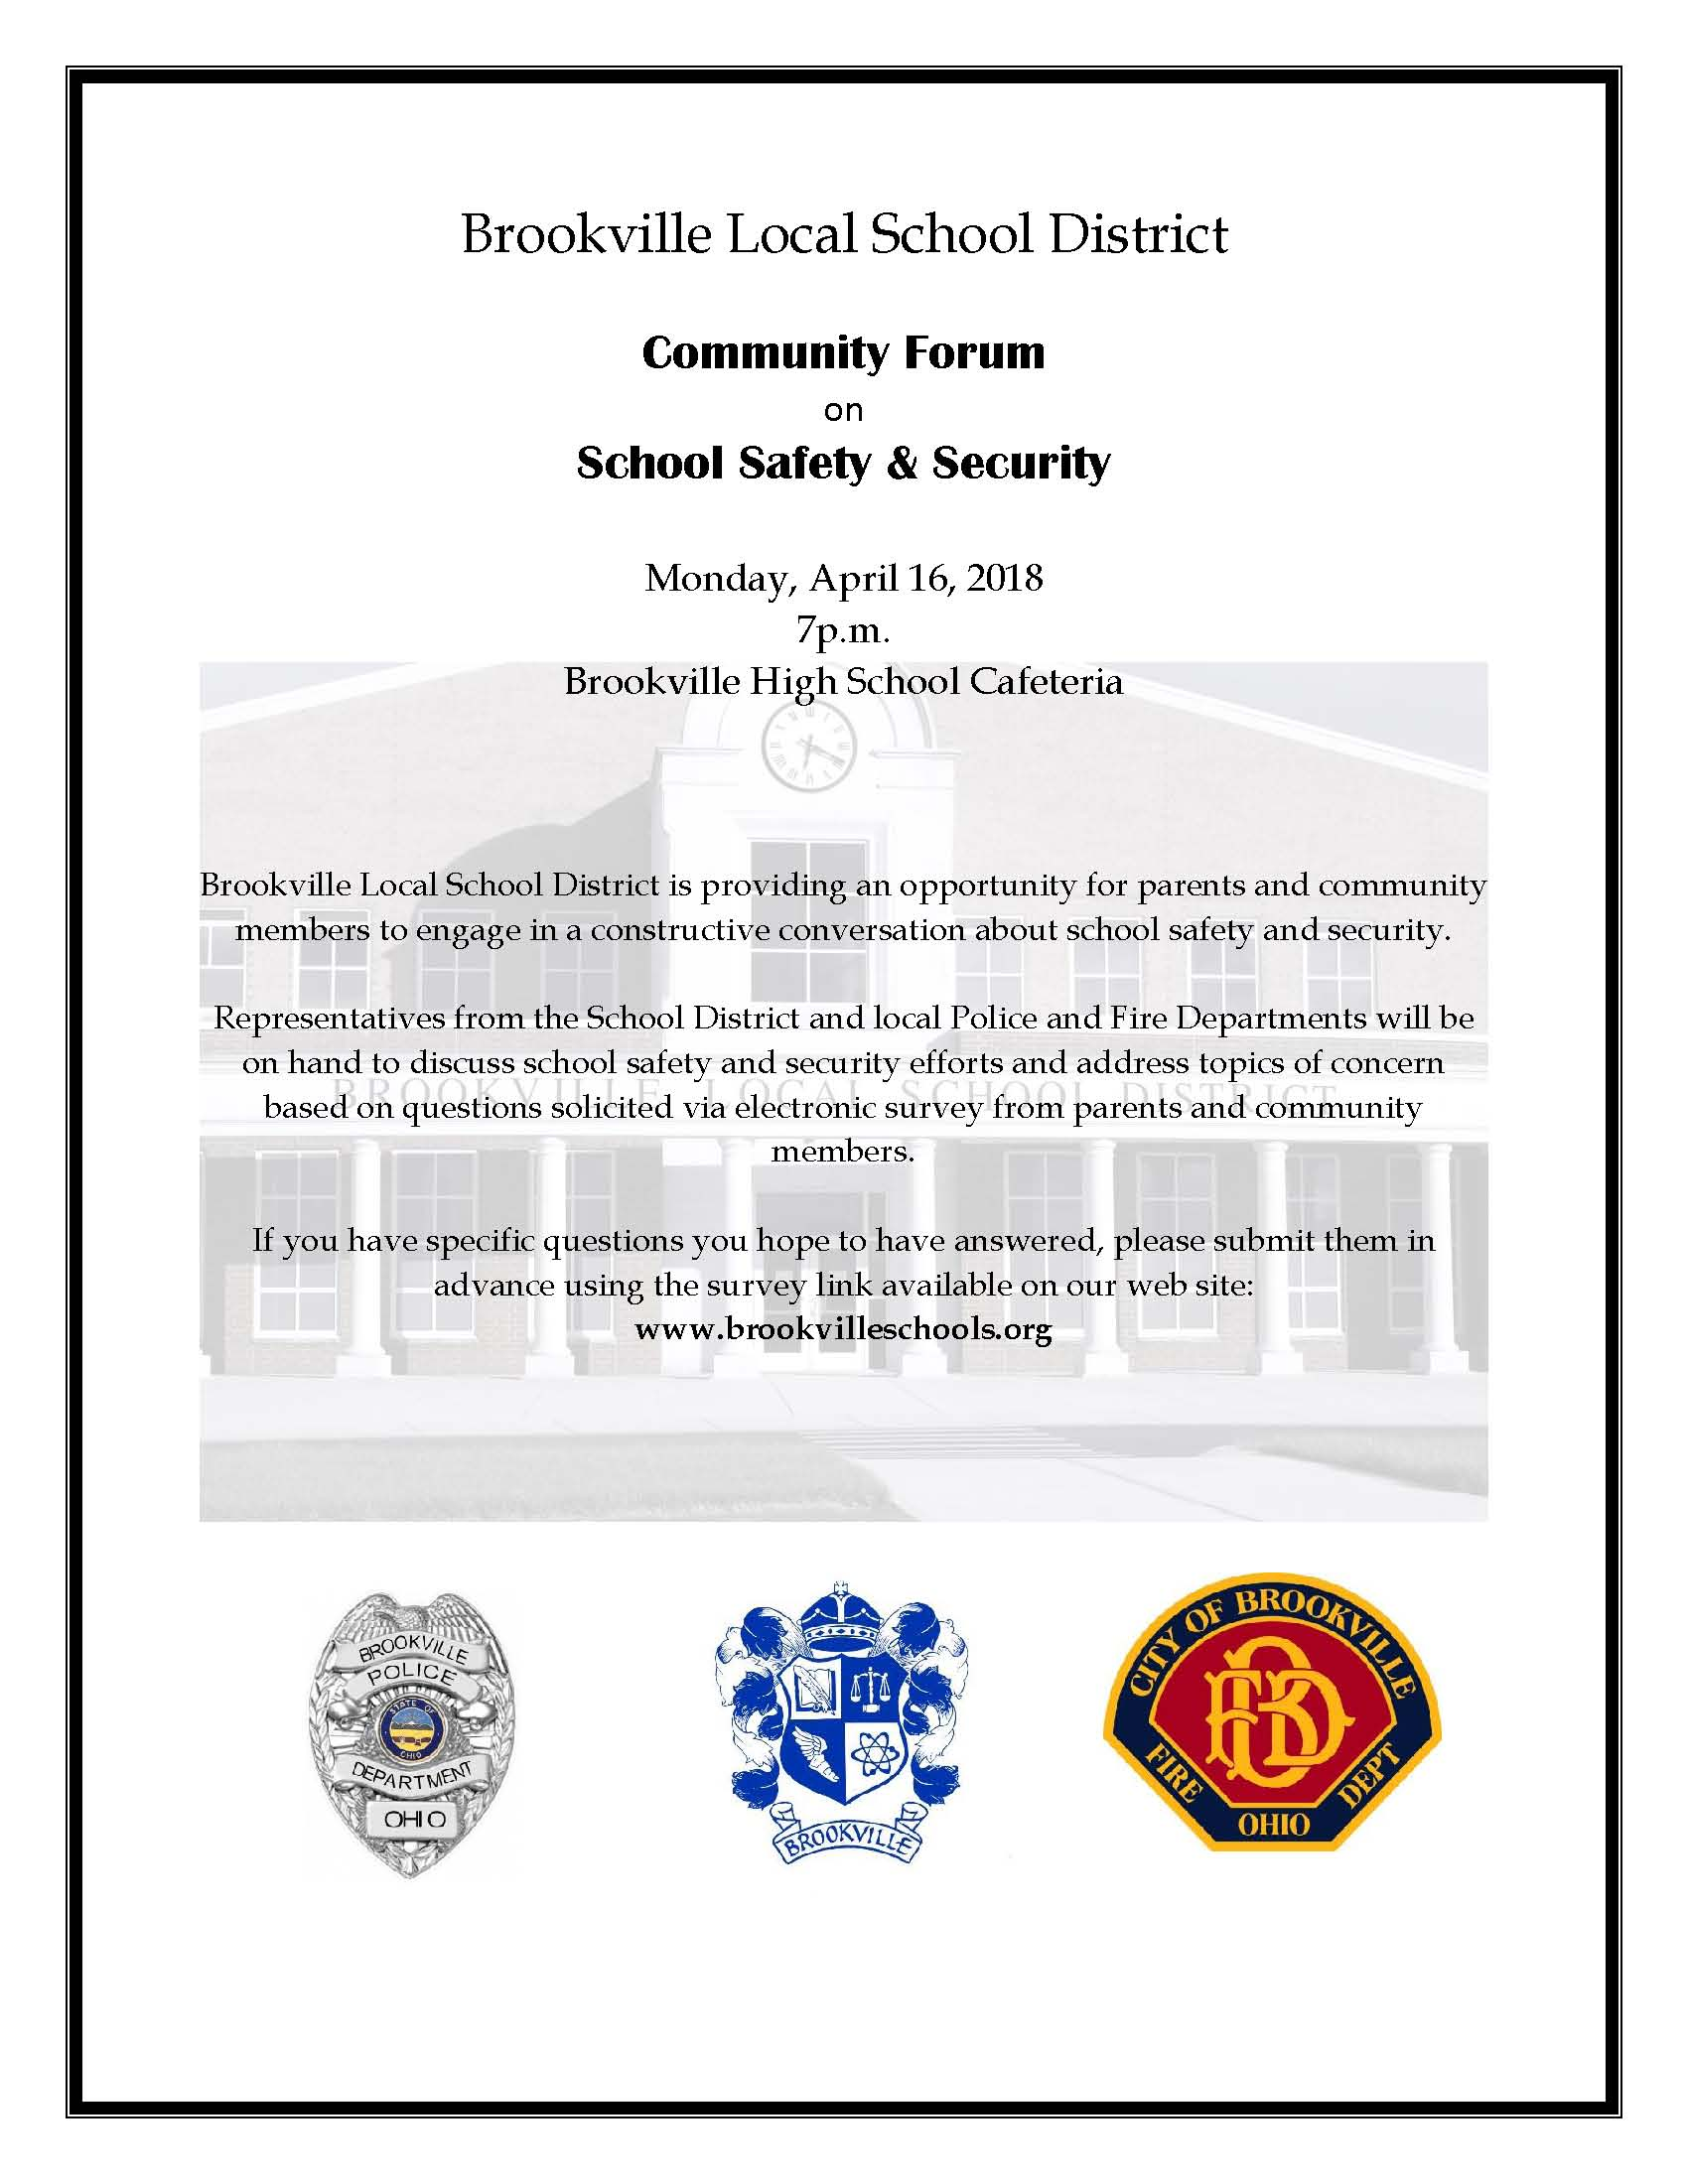 Brookville Local School District Community Forum Flyer - Final